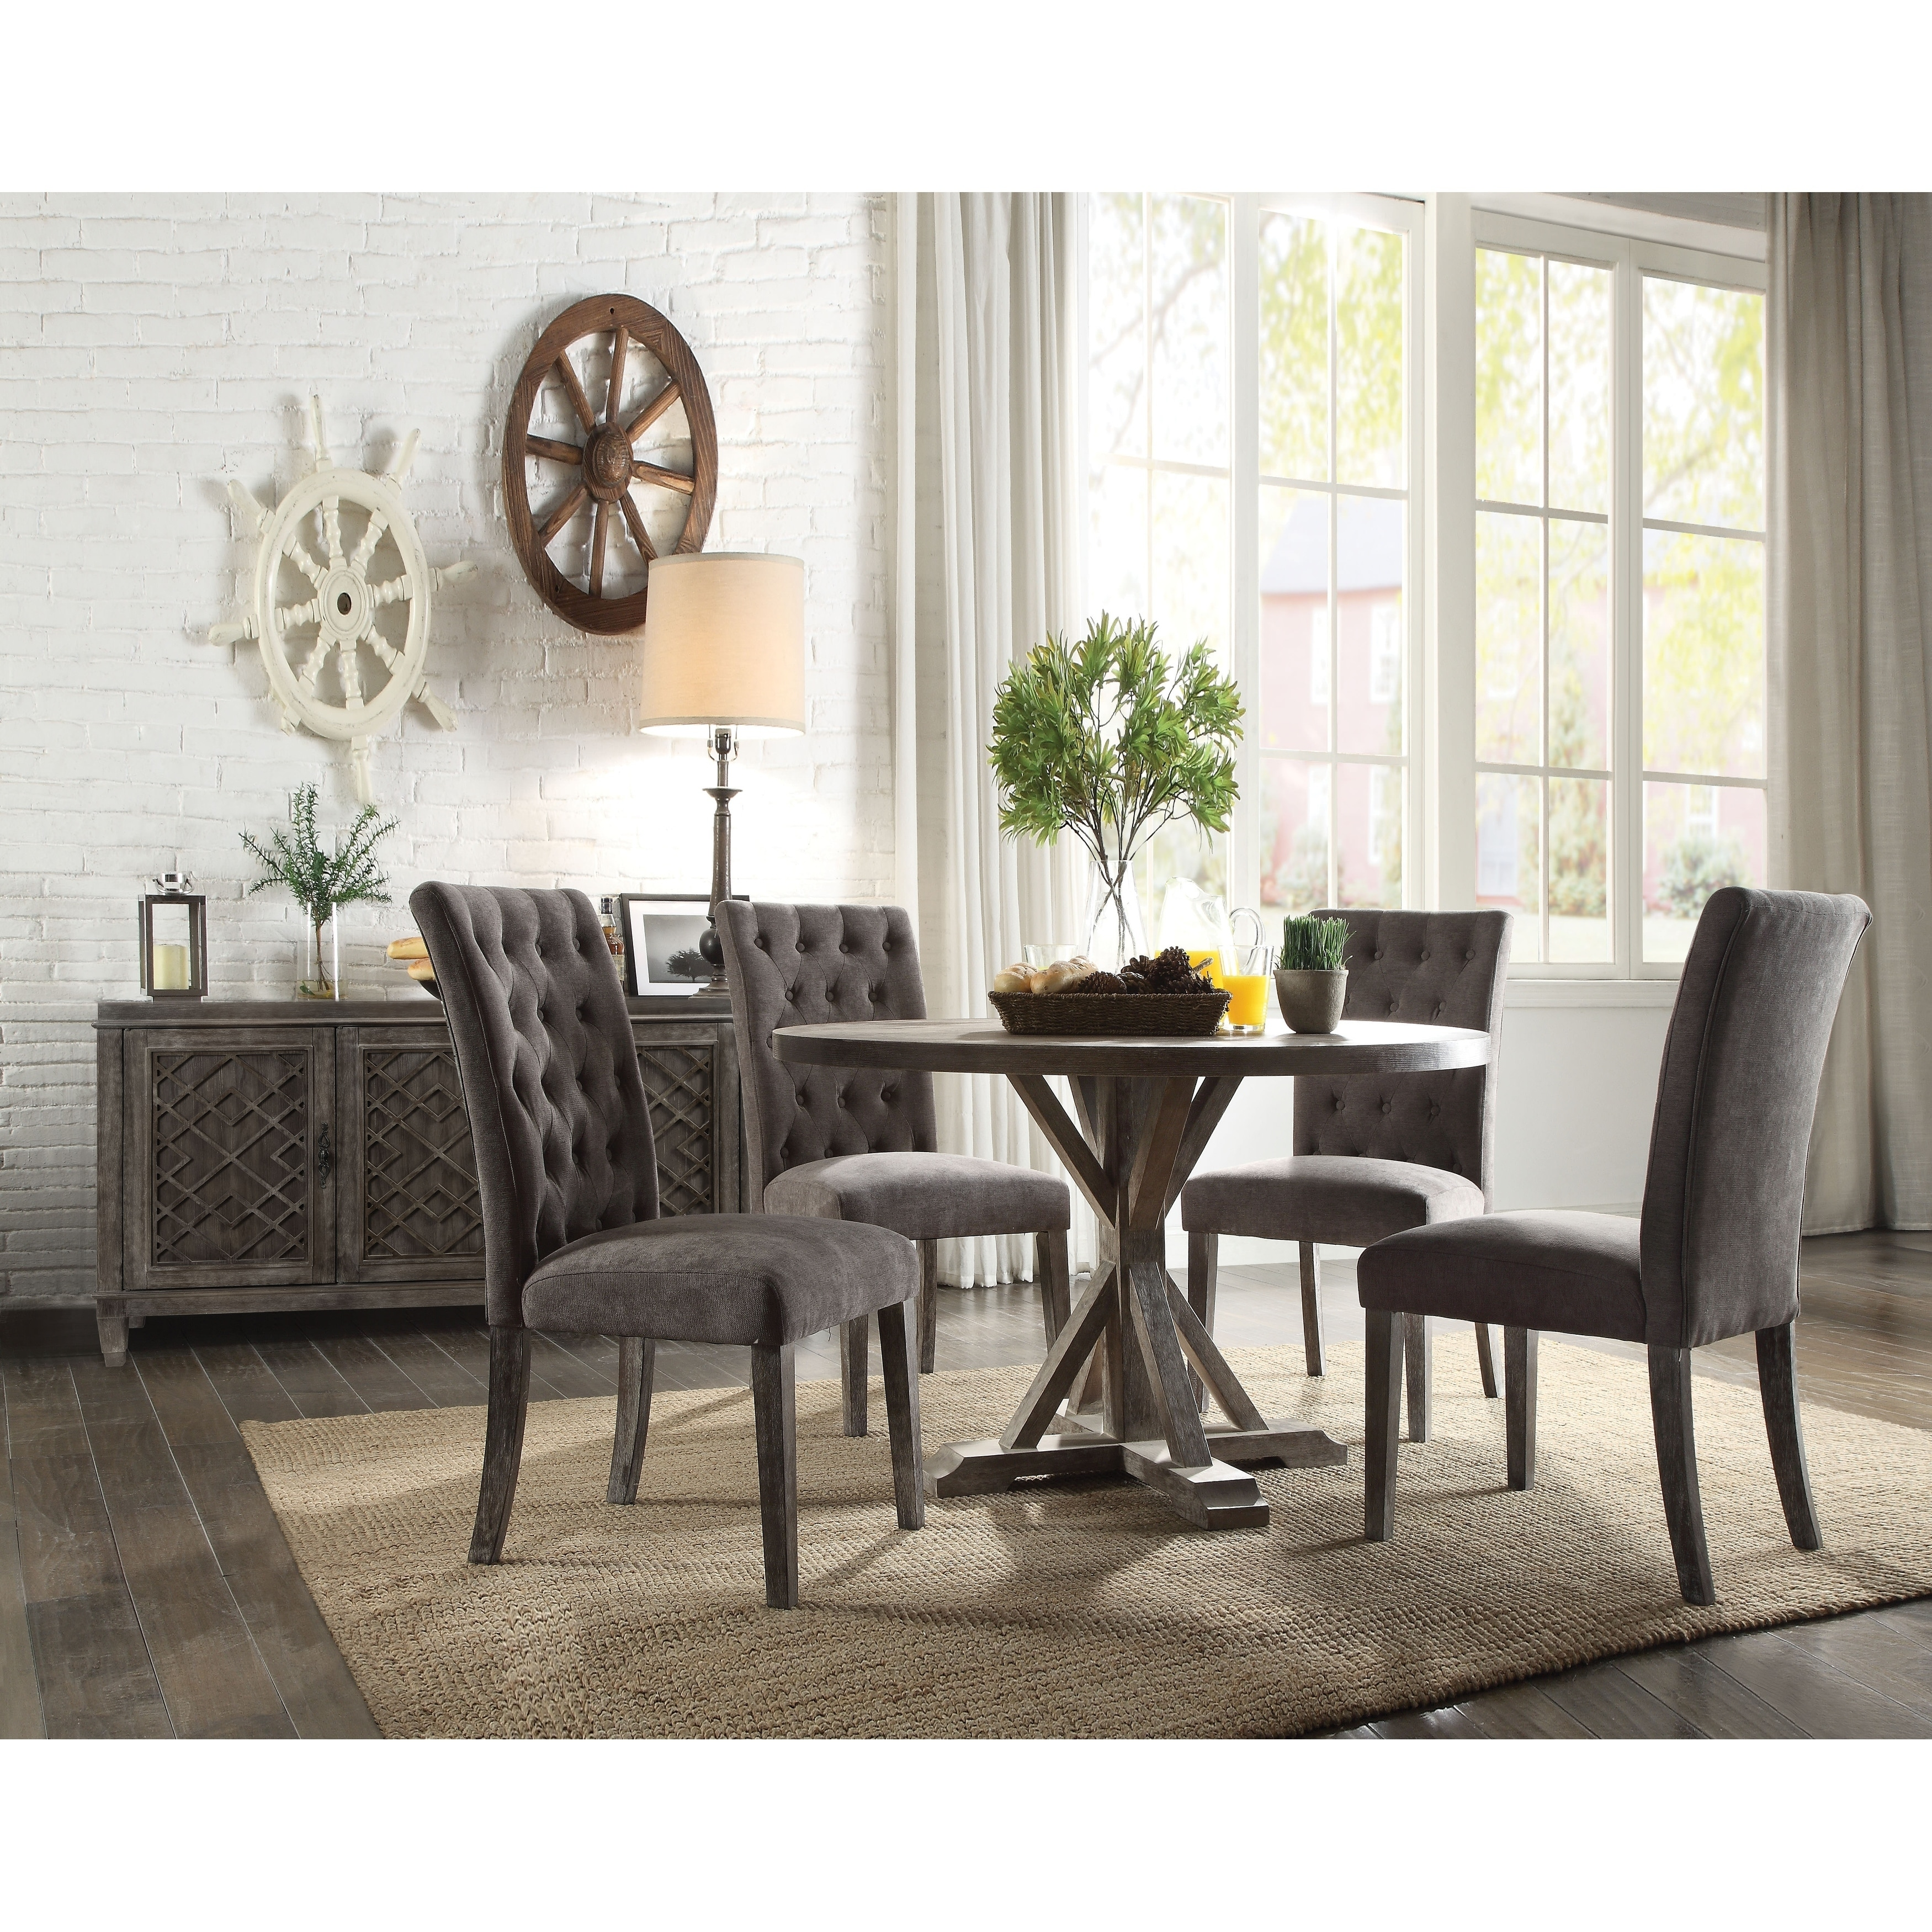 Shop acme carmelina weathered gray oak finish dining table free shipping today overstock com 22650527